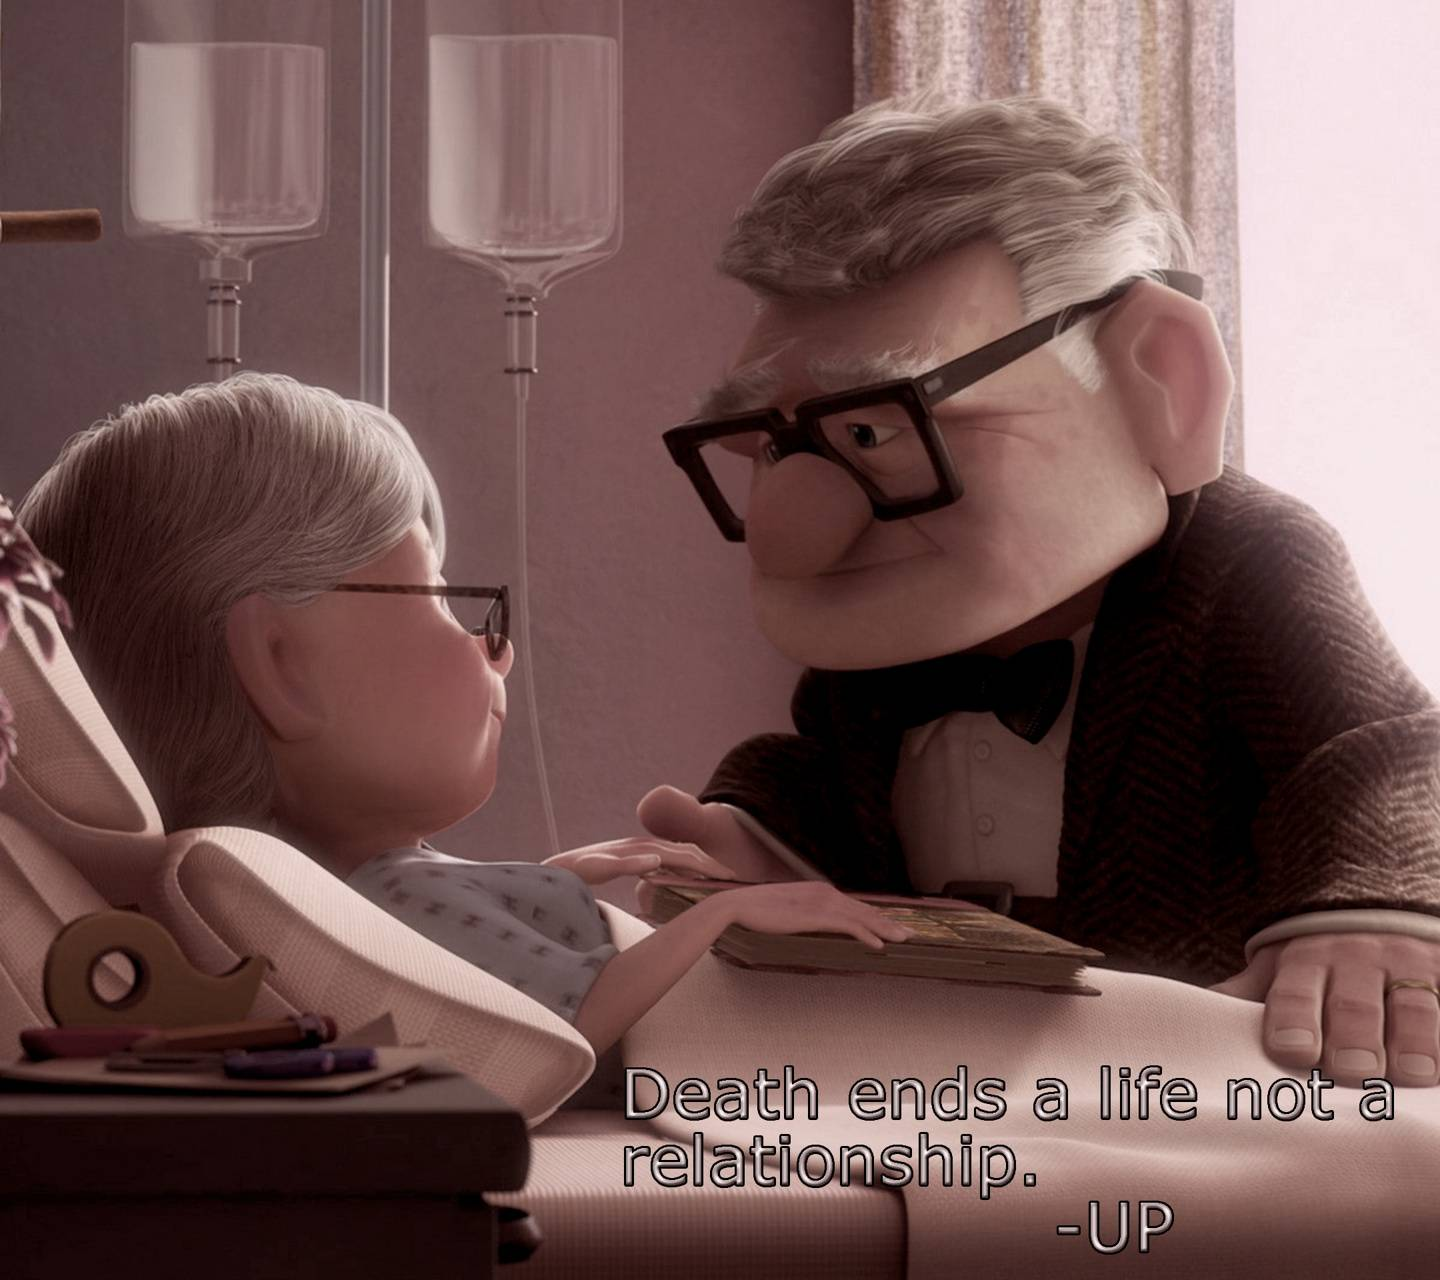 UP animated